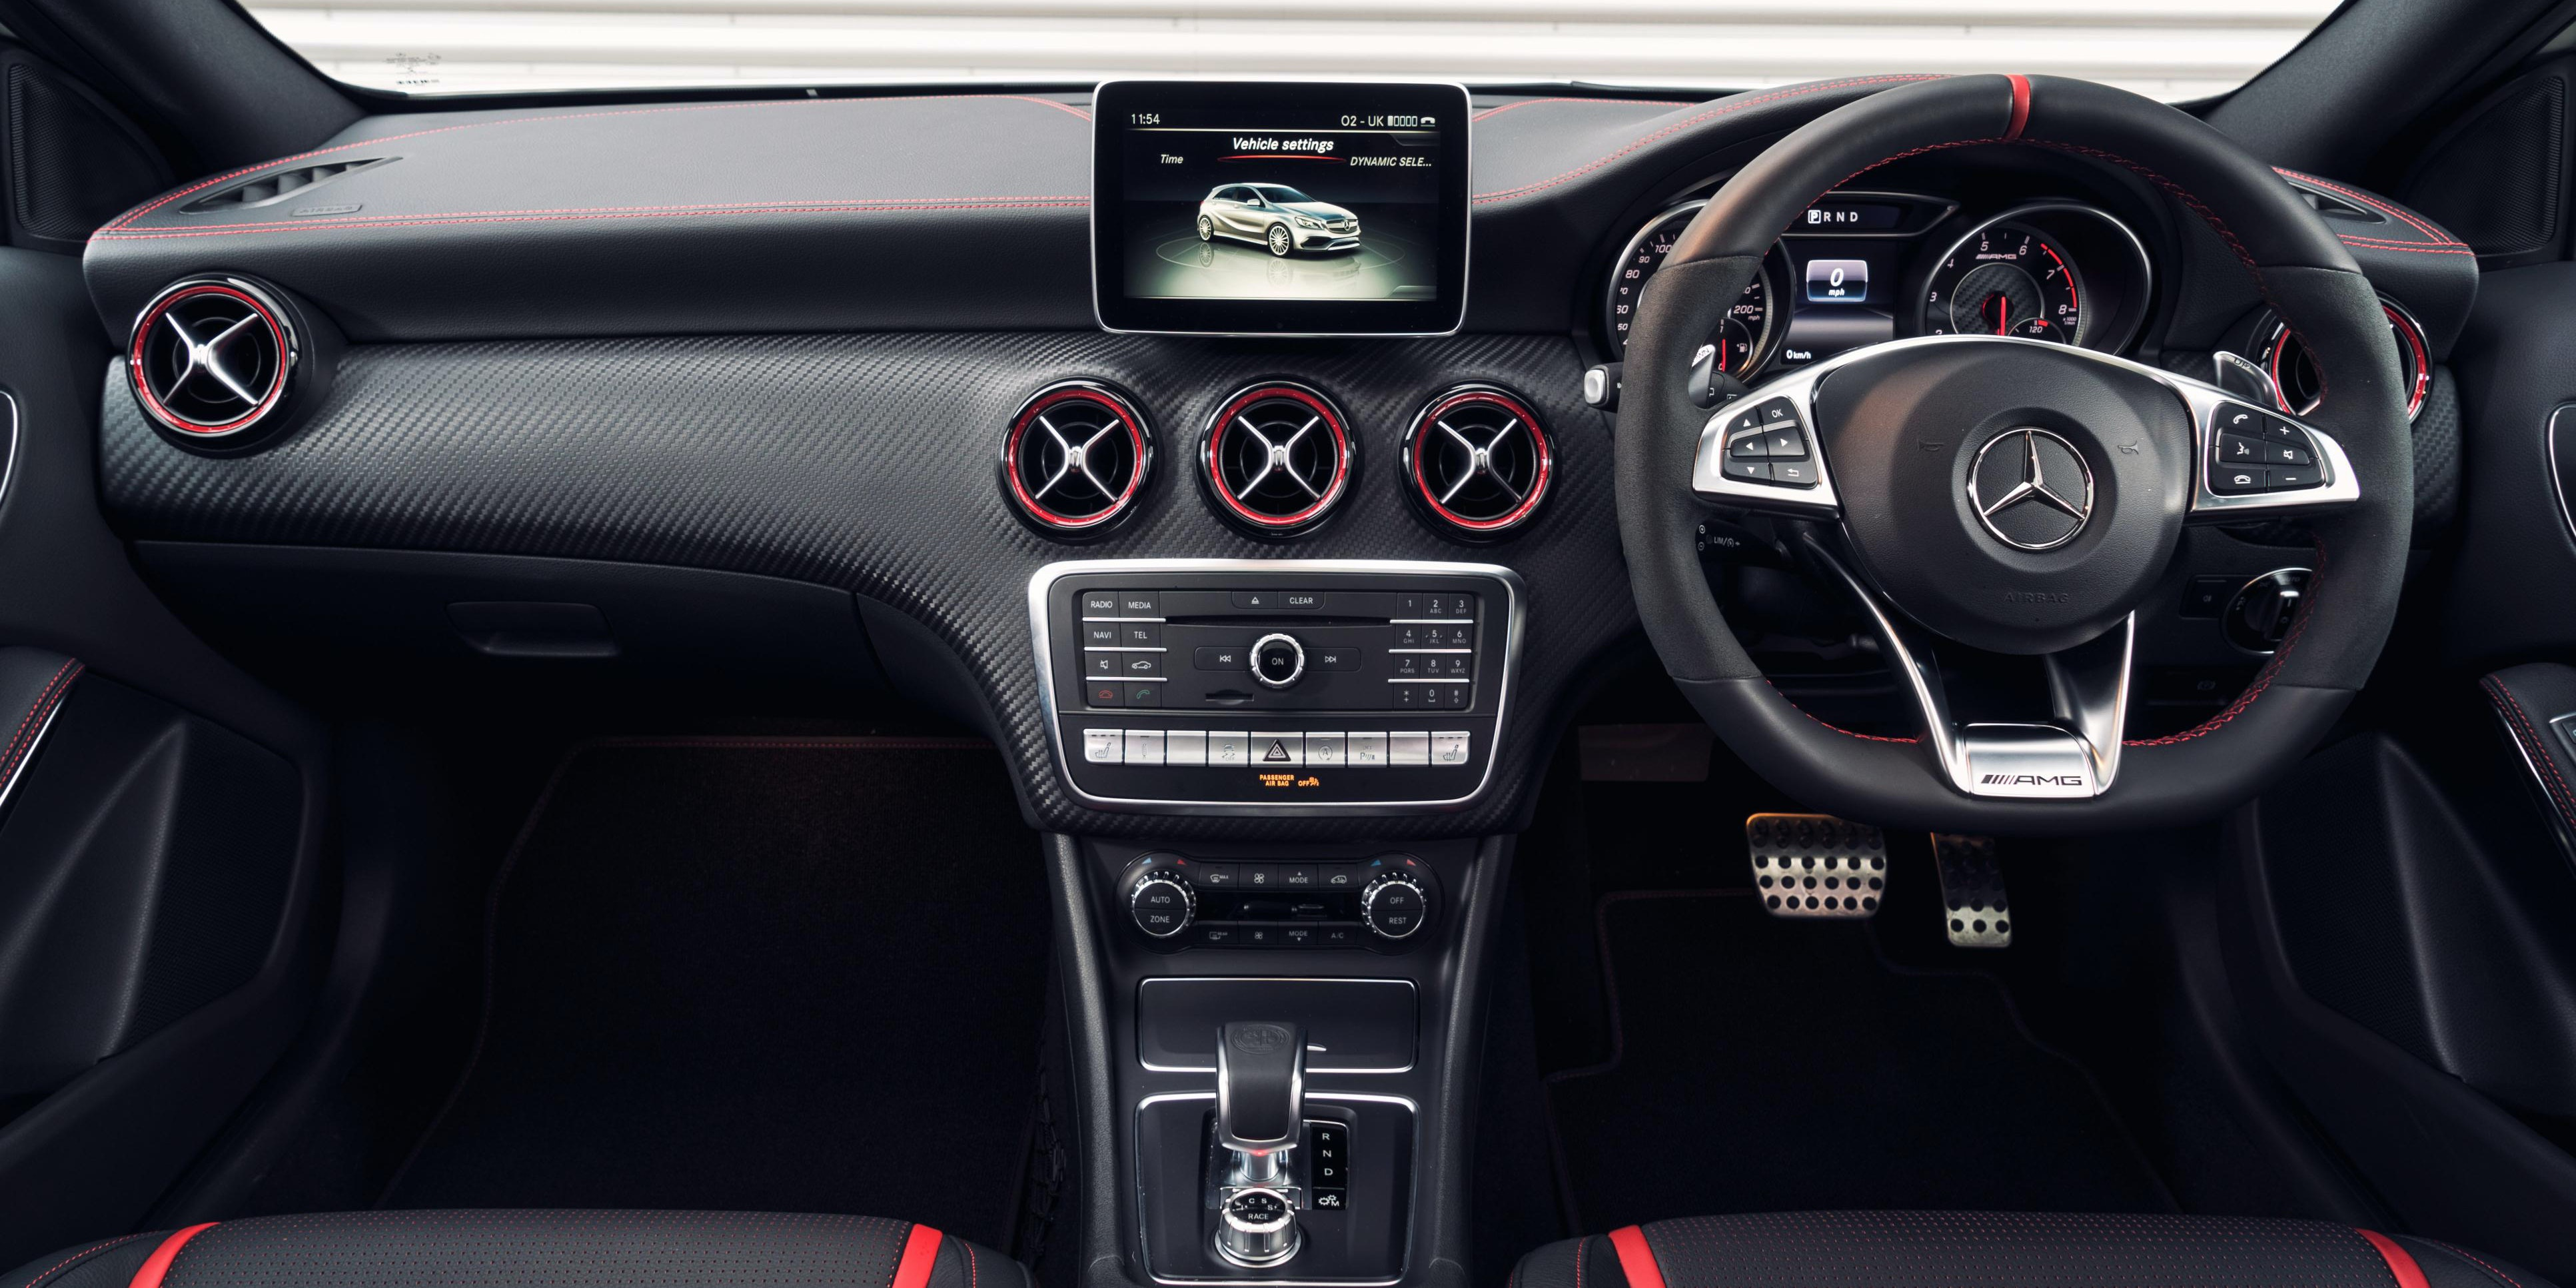 Mercedes A45 Amg Price >> Mercedes A45 AMG interior and infotainment | carwow